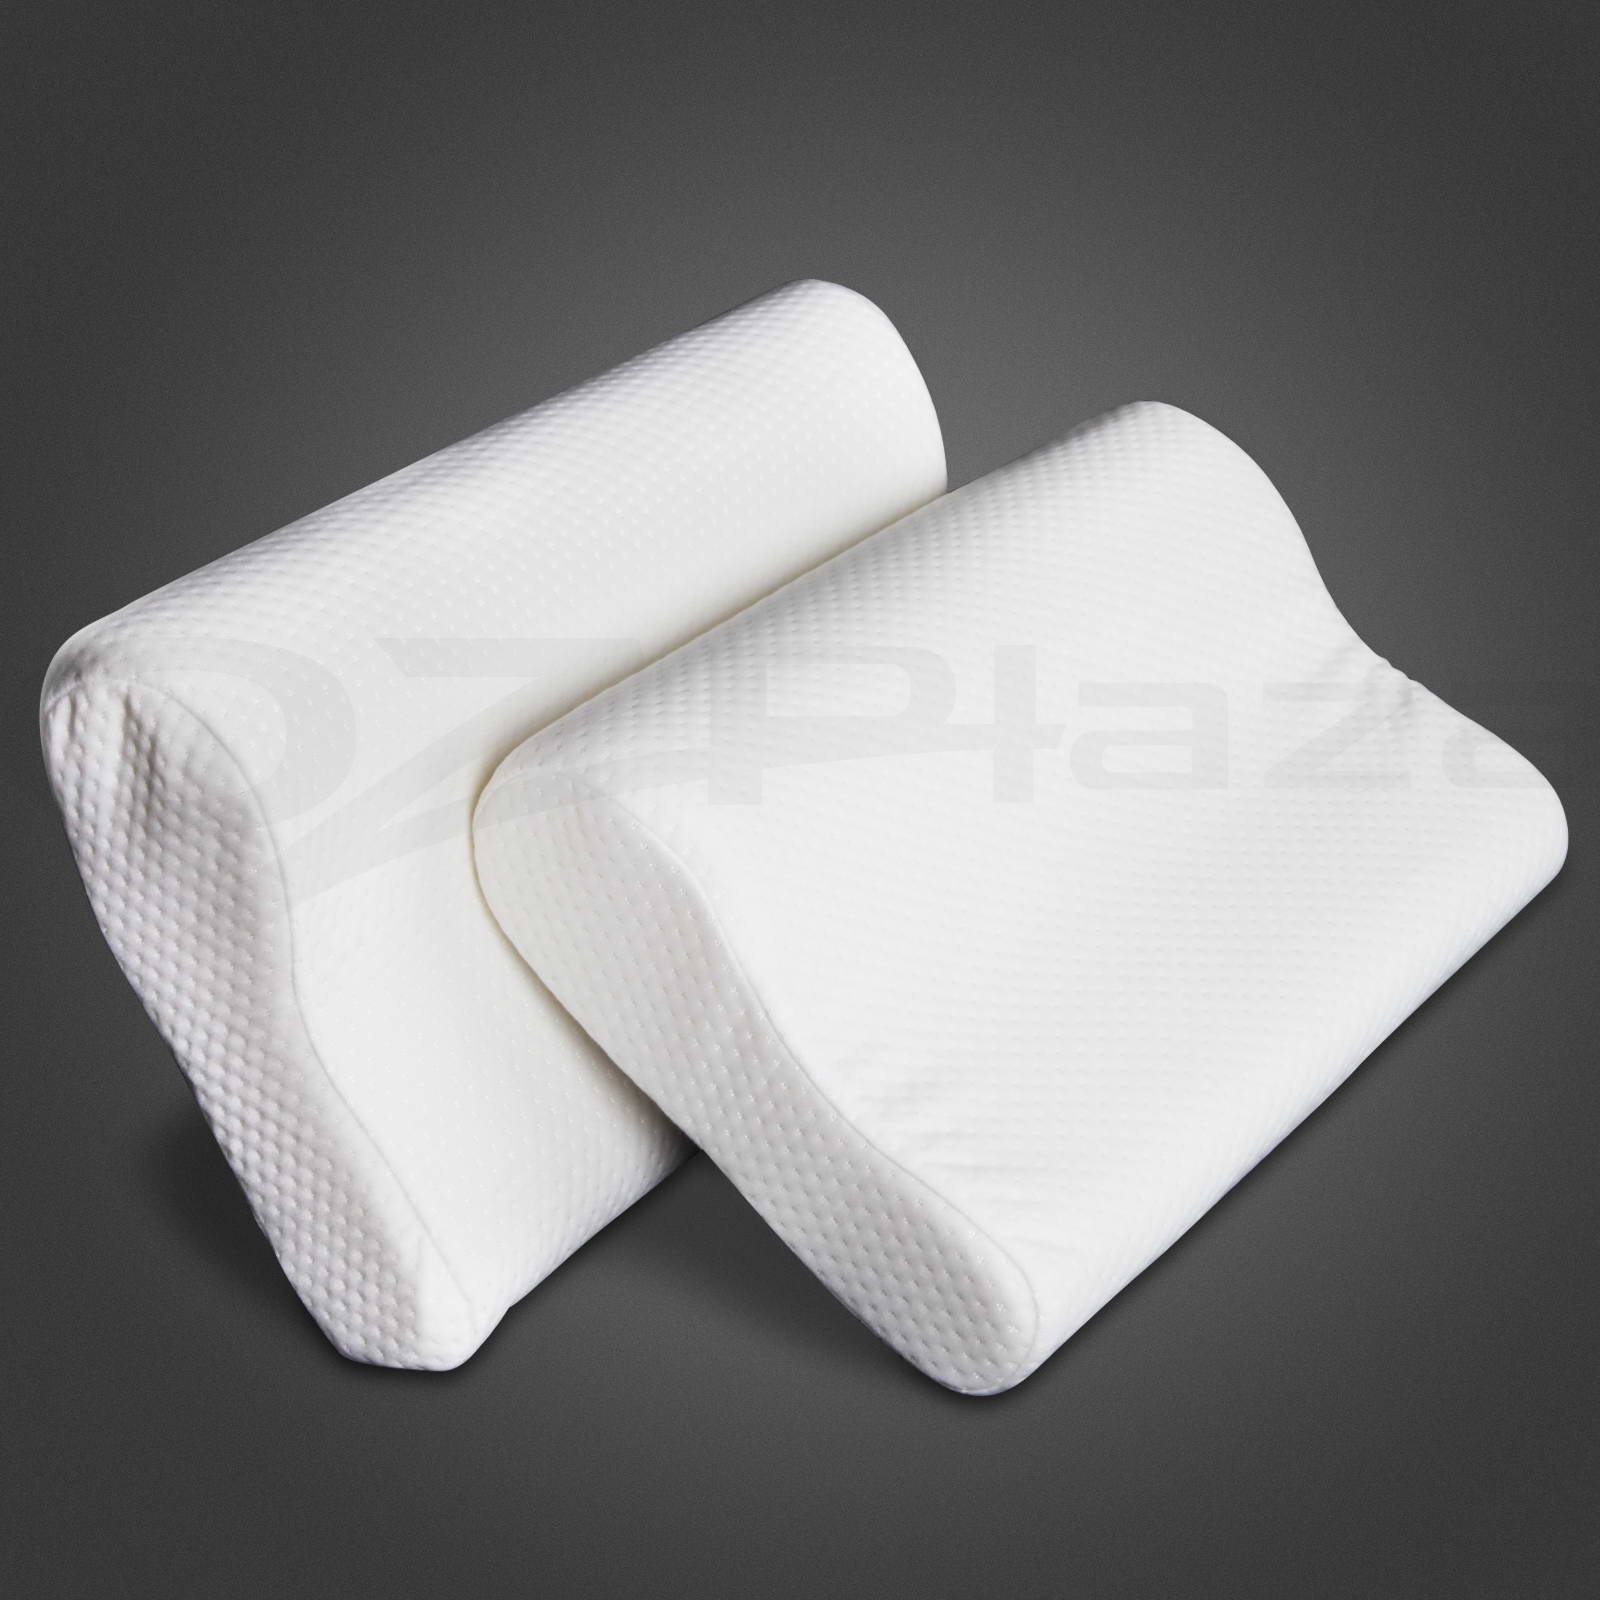 2-X-Pack-Deluxe-Visco-Elastic-Memory-Foam-Contour-Pillow-Home-Hotel-10cm-Thick